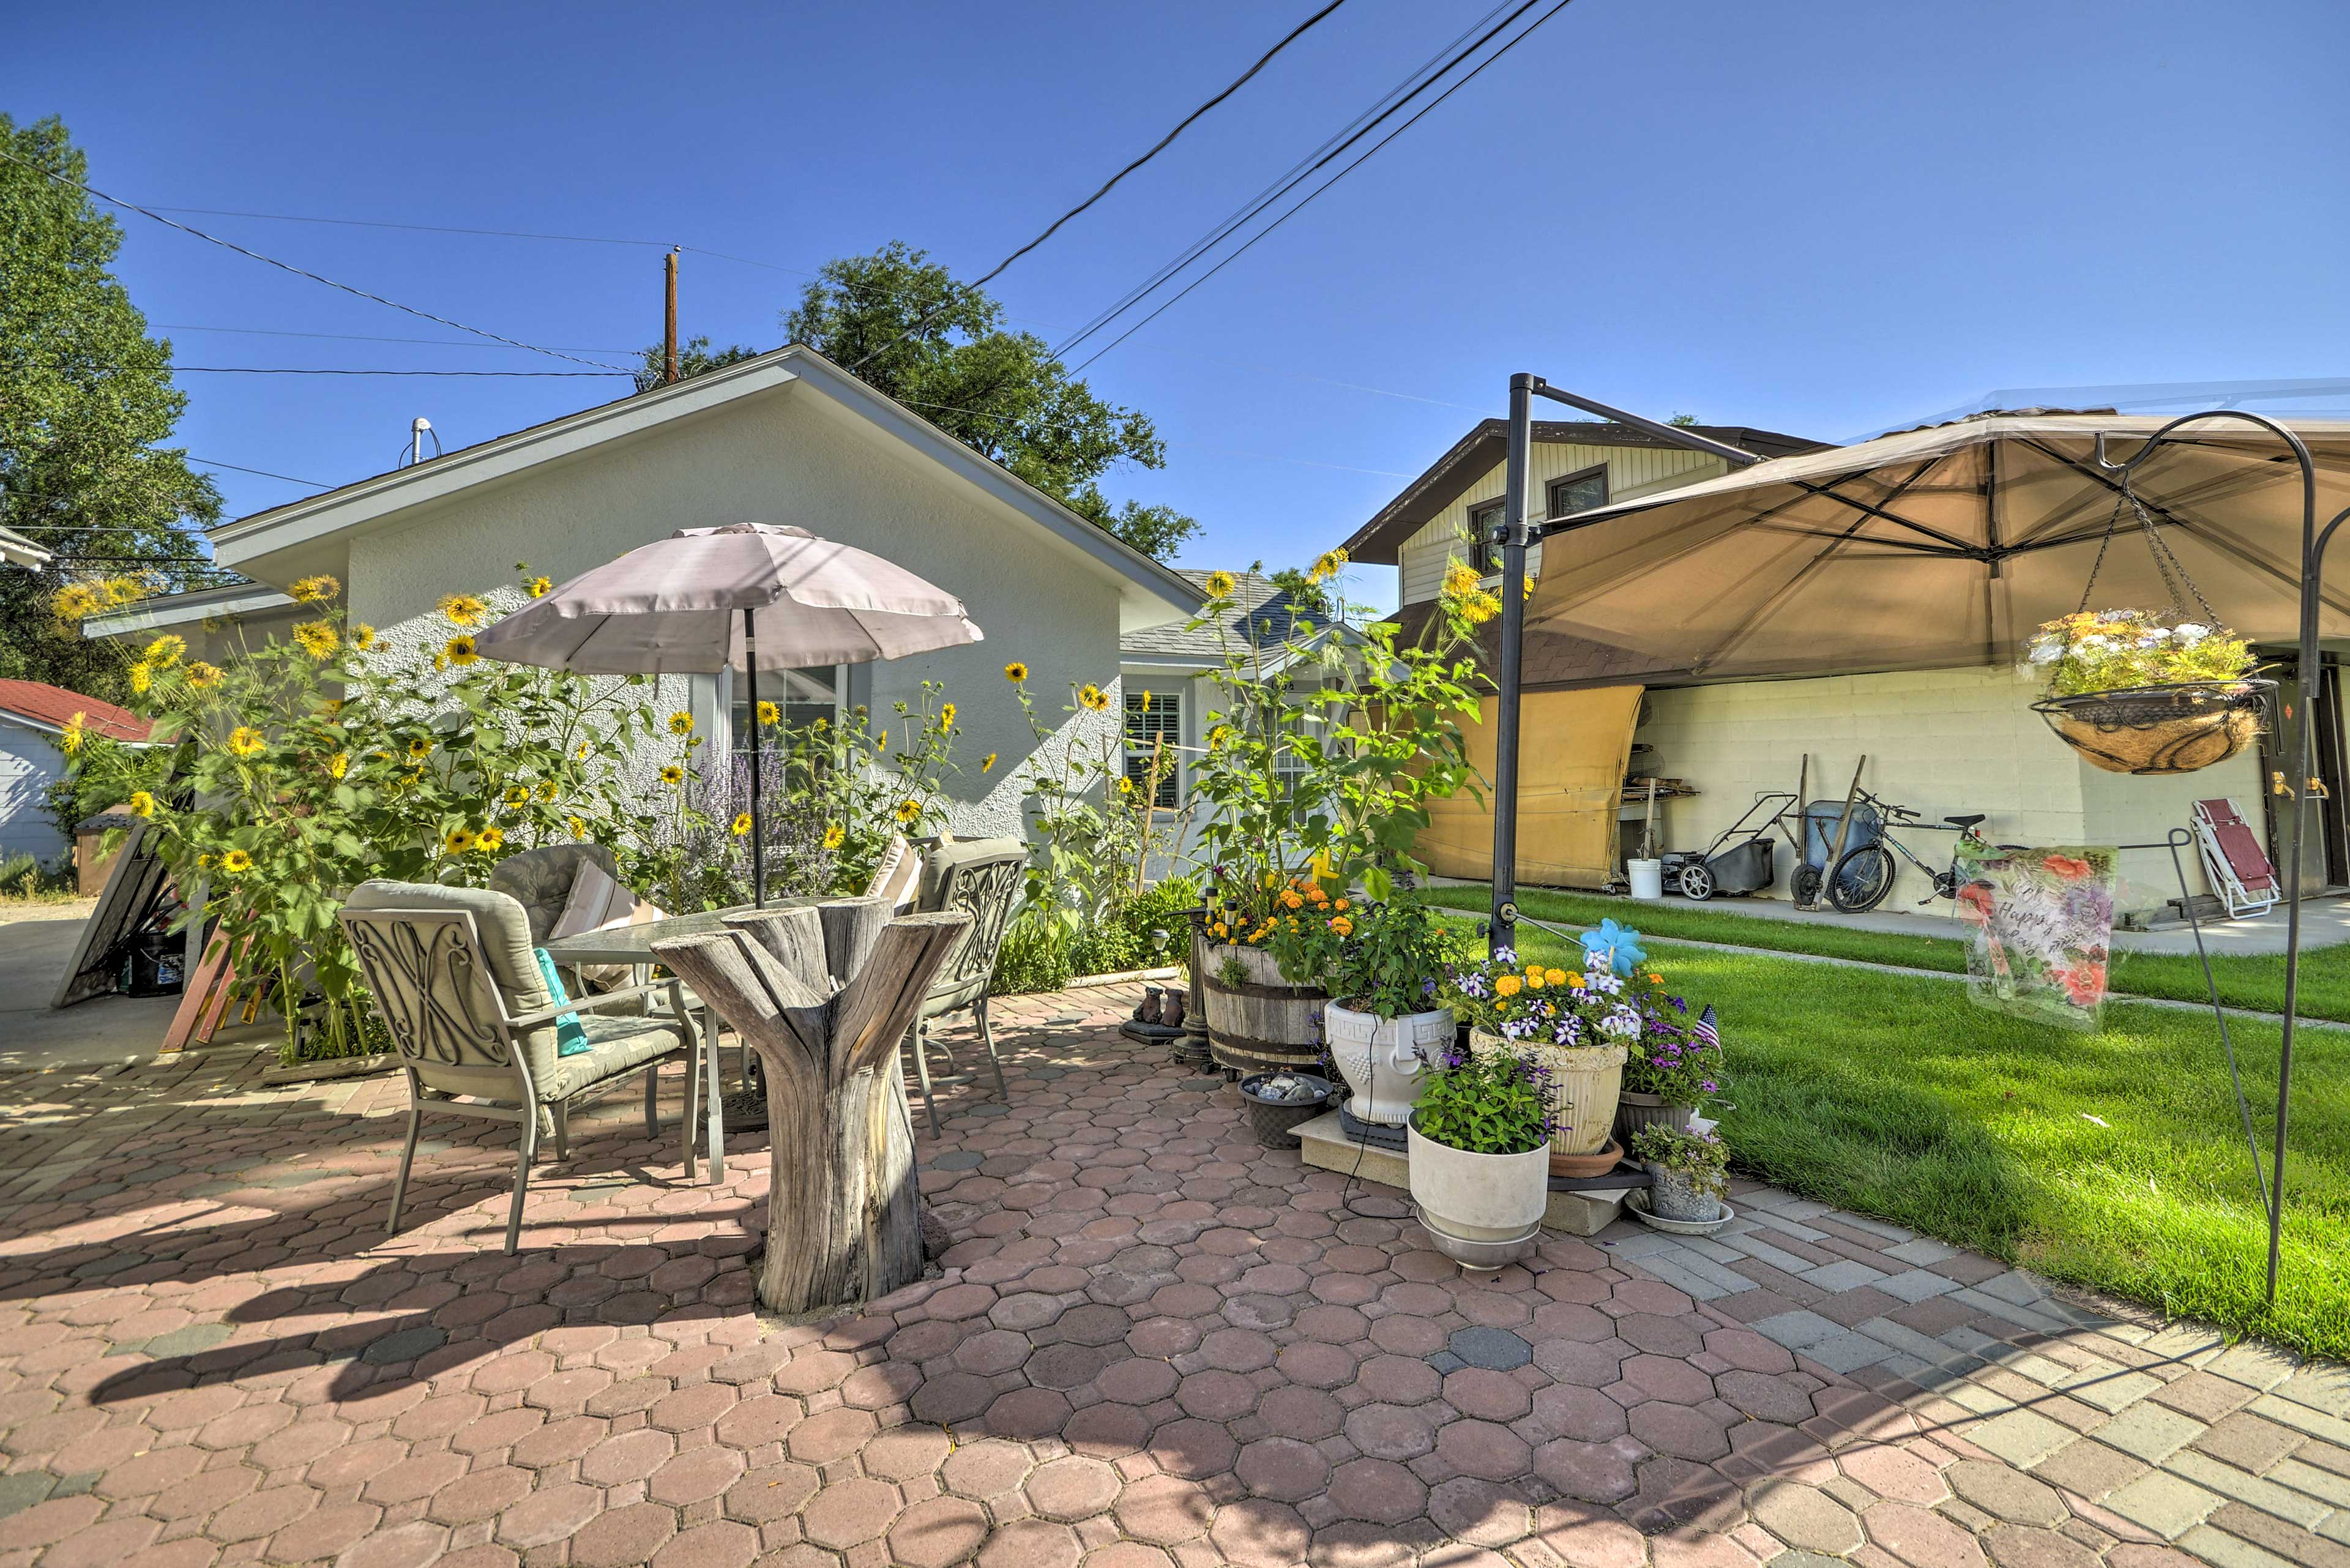 Enjoy the patio space with friends on a warm summer day.